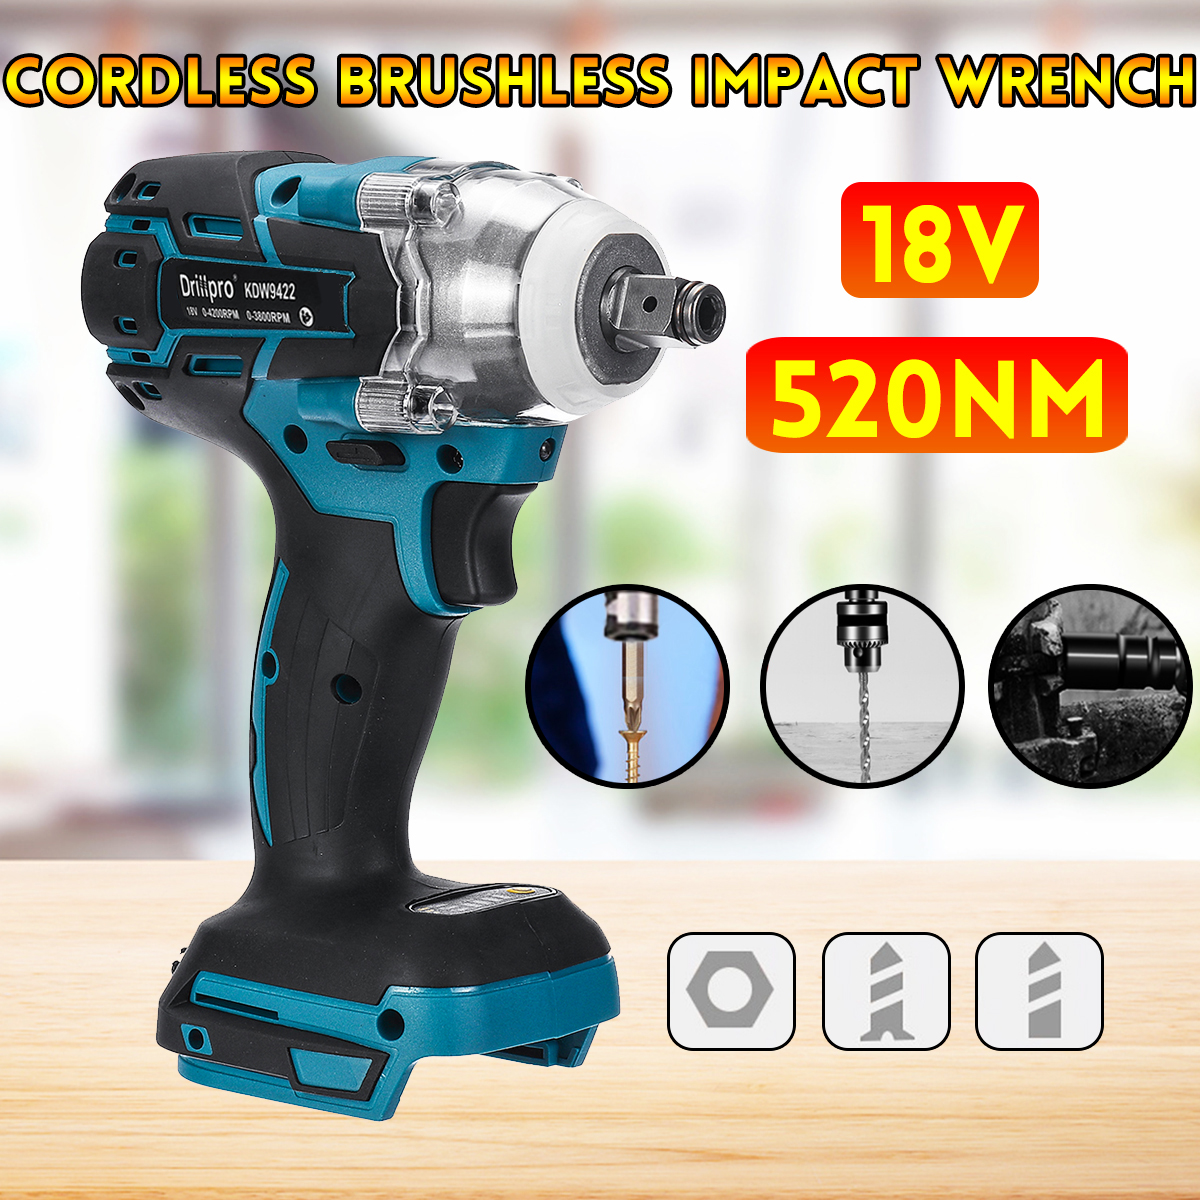 Drillpro Brushless Cordless Electric Impact Wrench Rechargeable 1/2 inch Wrench Power Tools Compatible for Makita 18V Battery